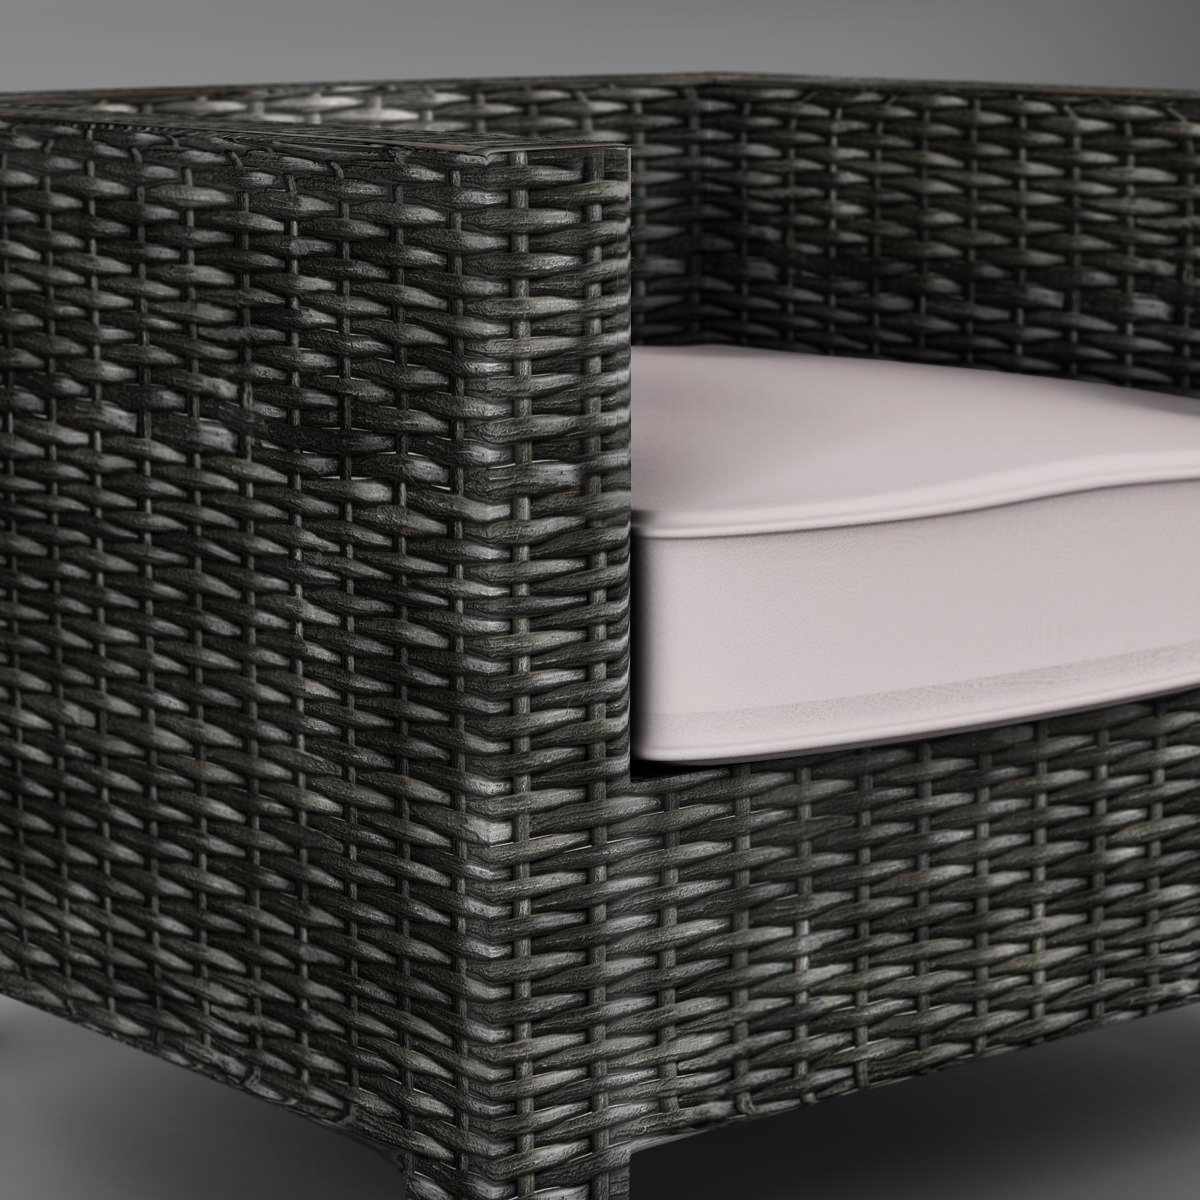 wicker couch 3d model 3ds max fbx c4d ma mb obj 162337